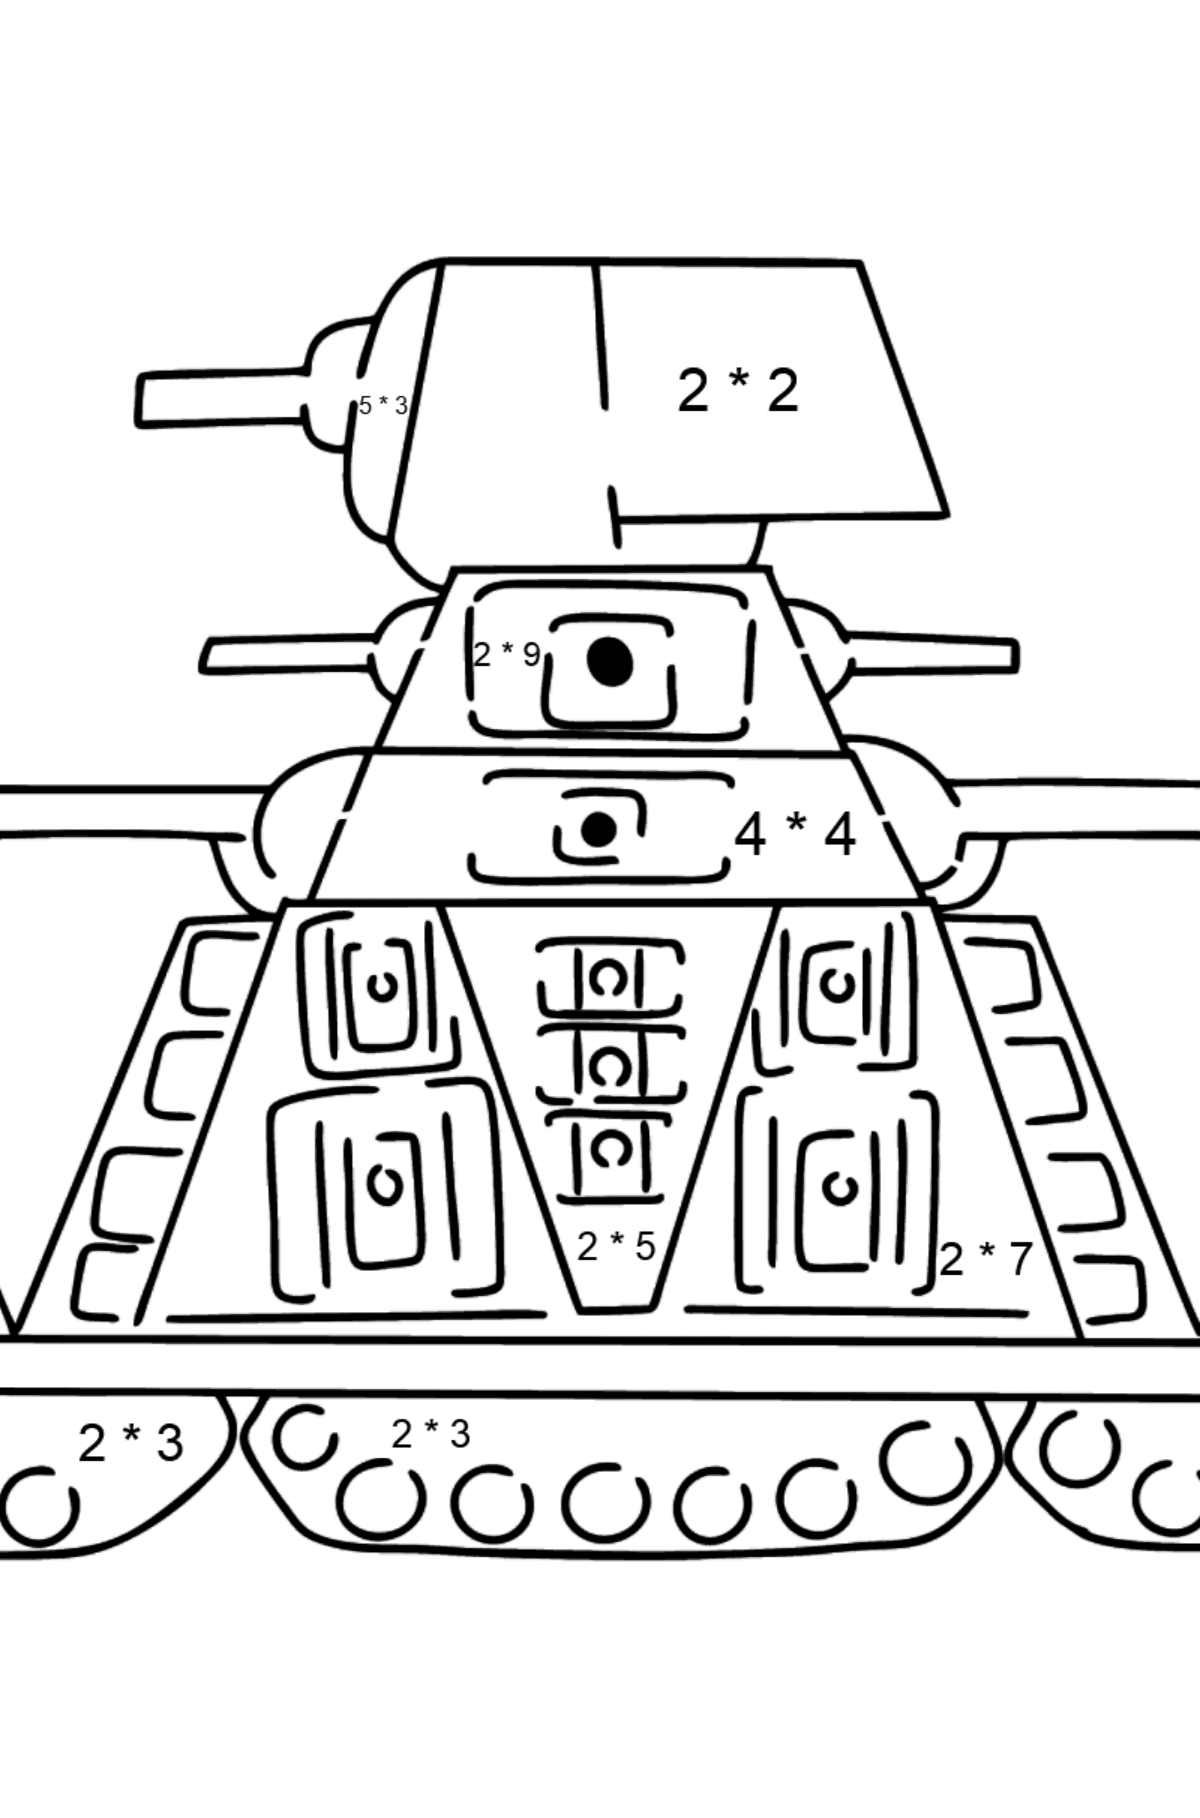 Tank KV 44 coloring page - Math Coloring - Multiplication for Kids